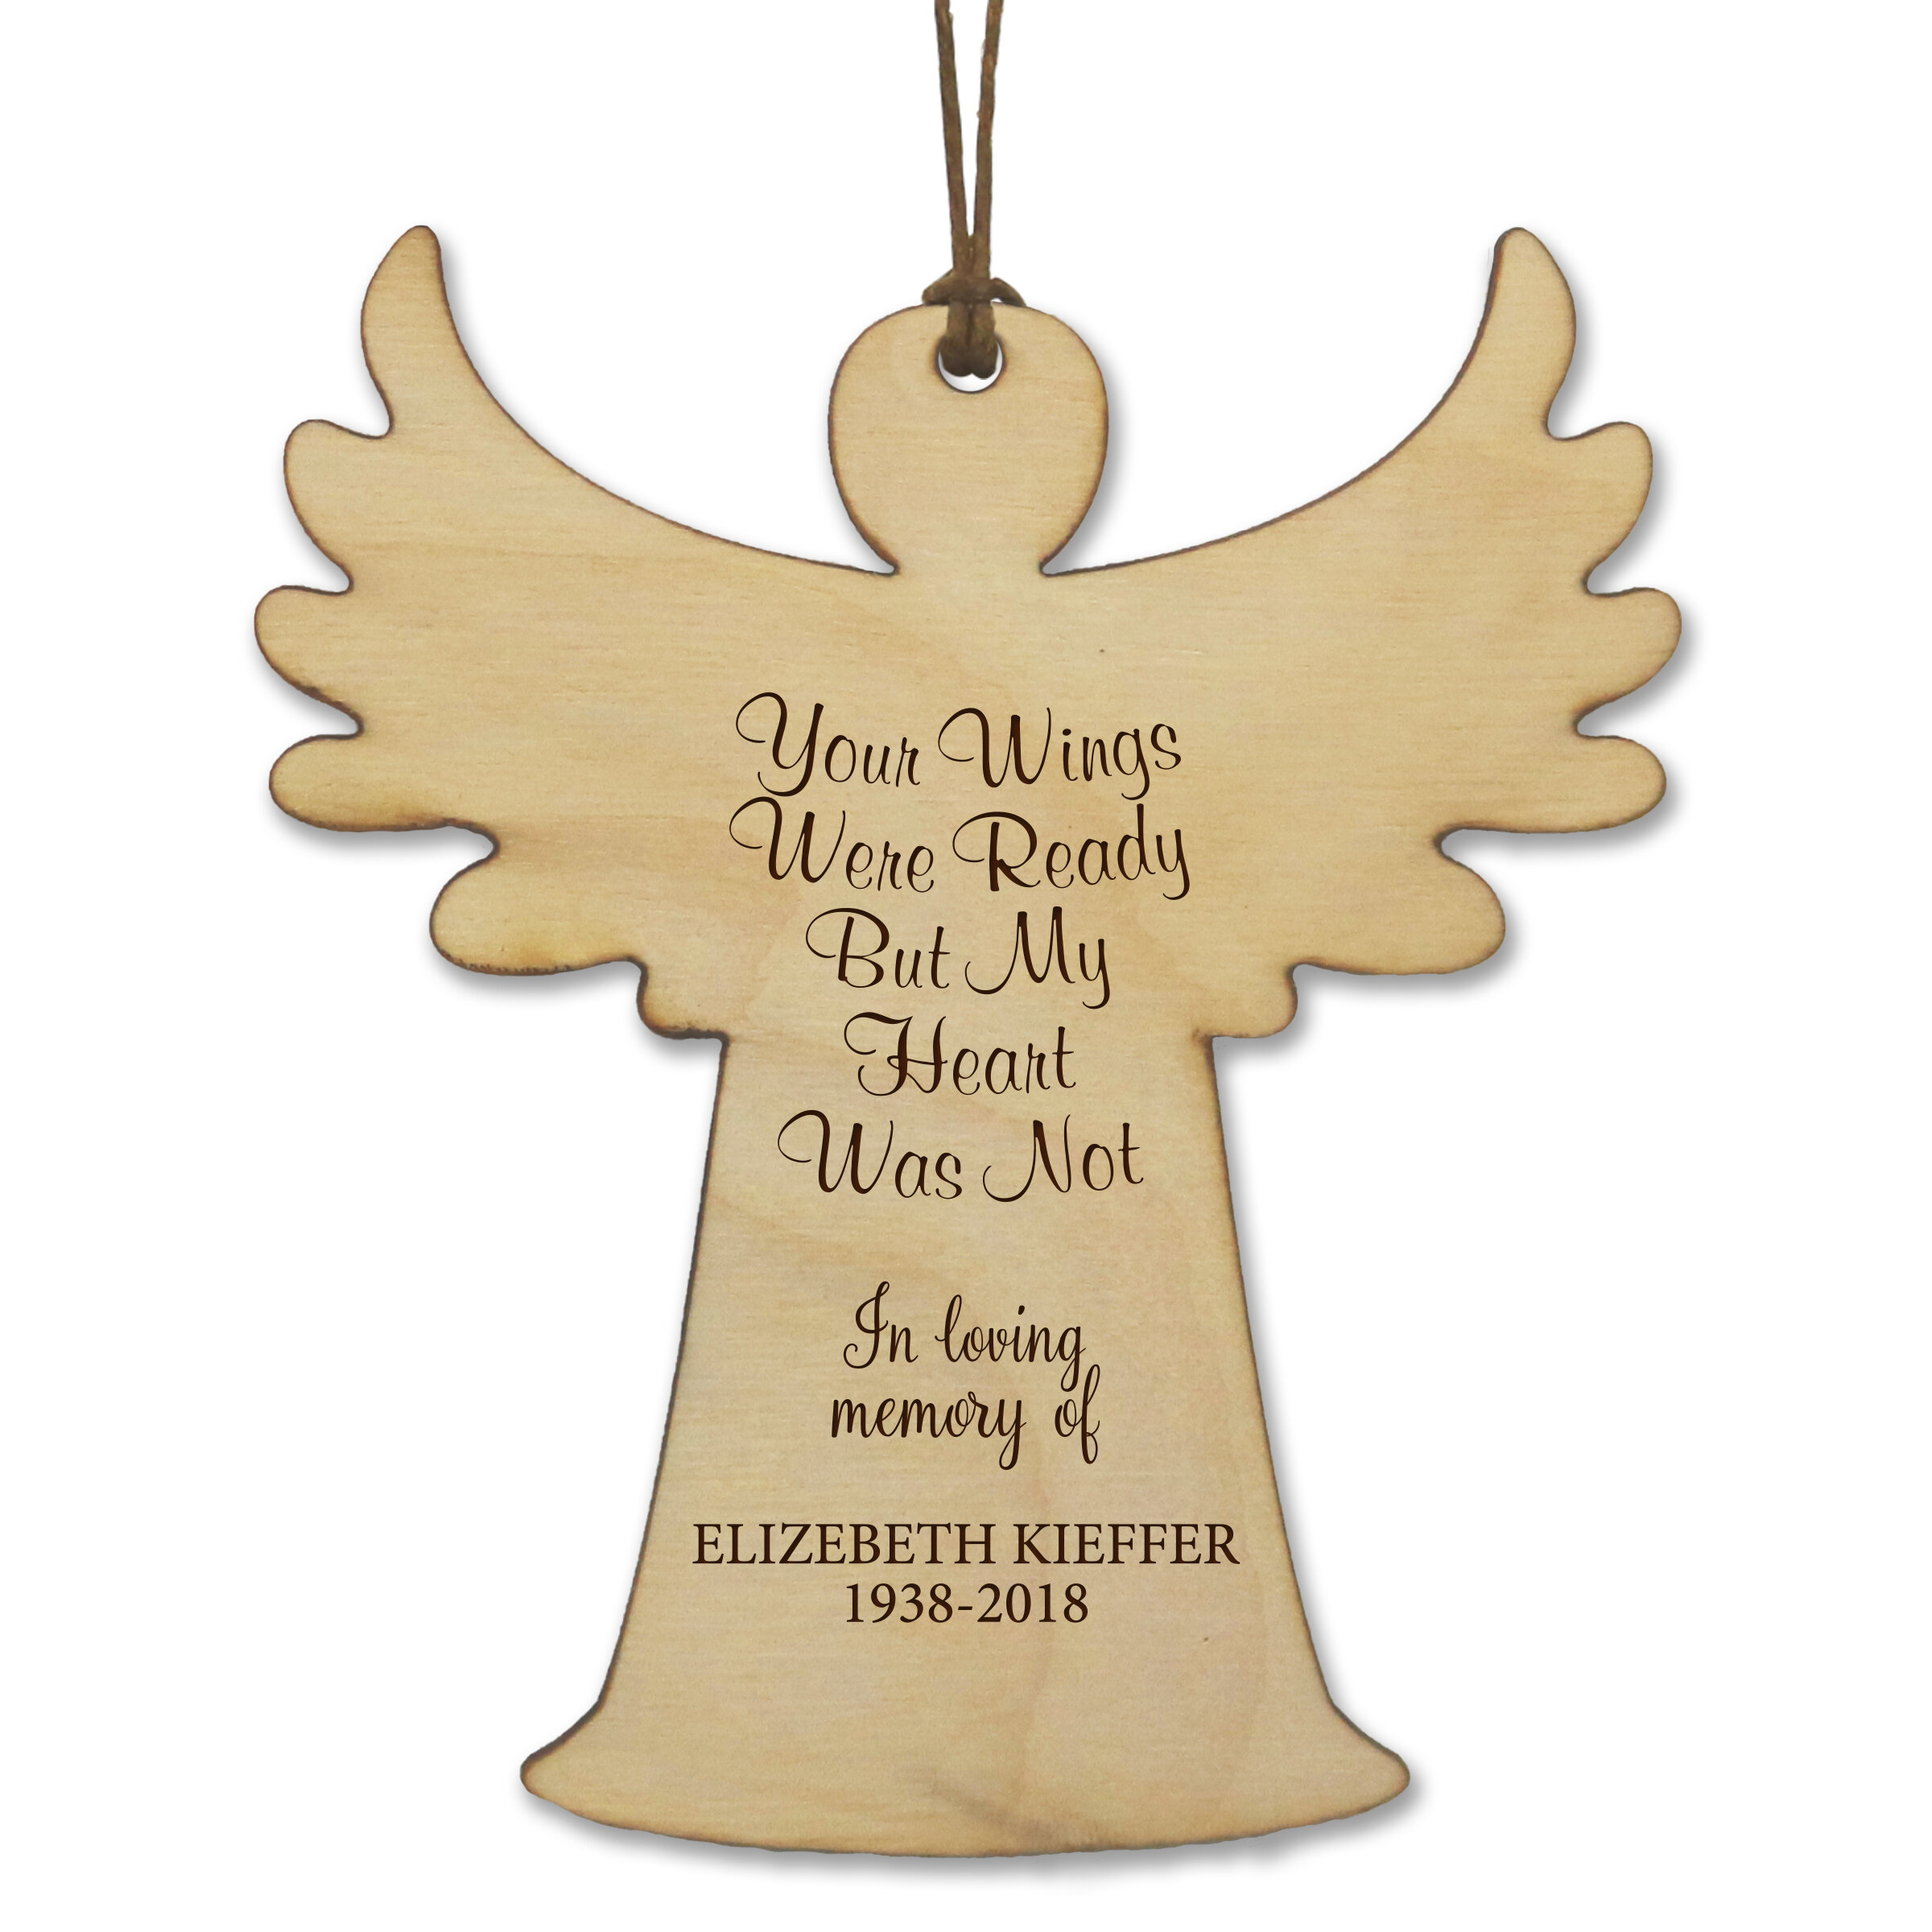 The Holiday Aisle Your Wings Were Ready Memorial Keepsake Engraved Angel Hanging Figurine Ornament Wayfair